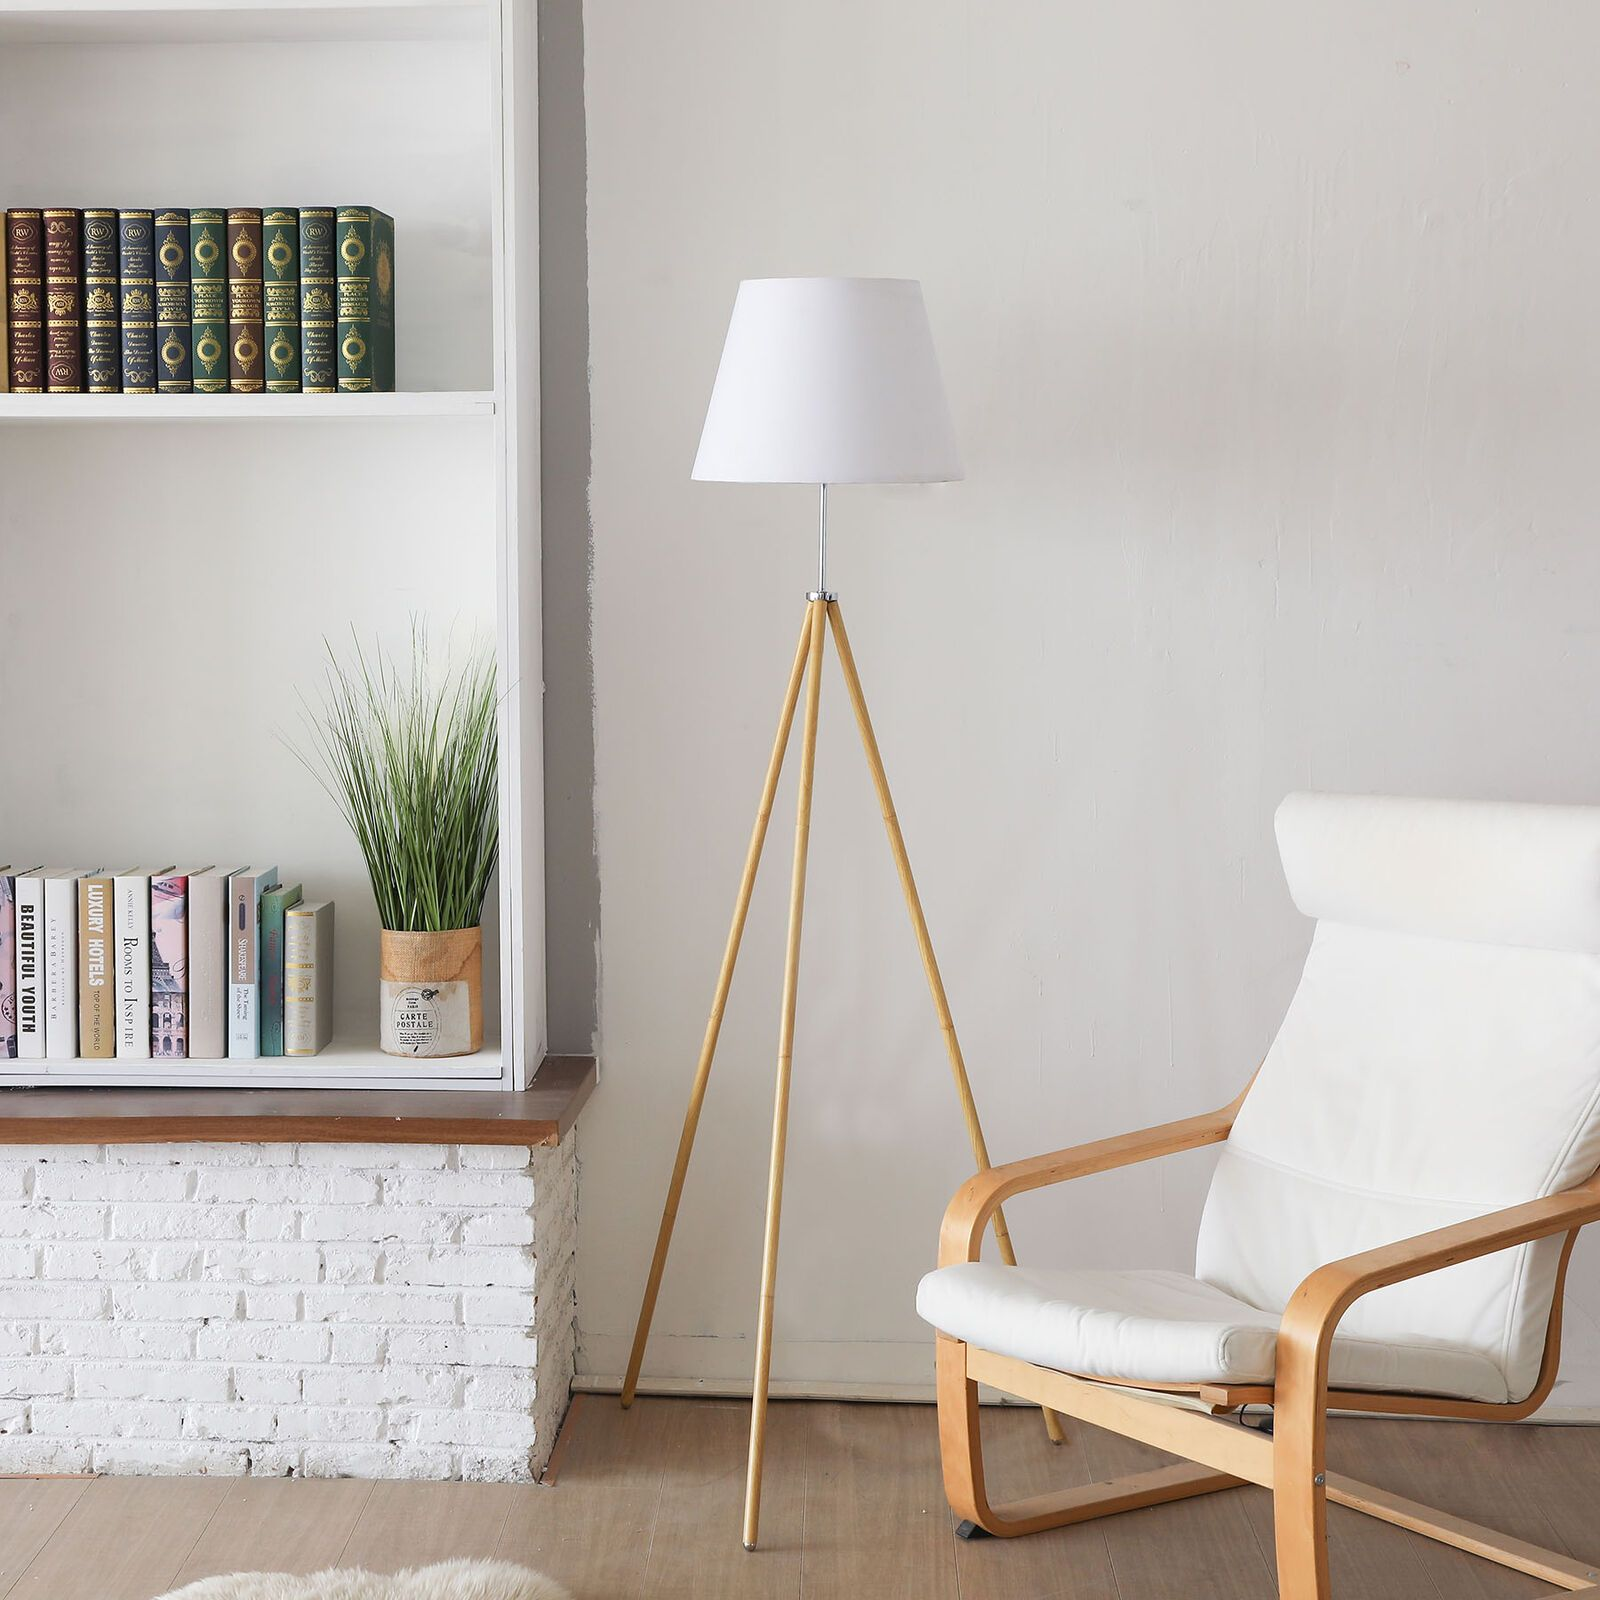 Easel Floor Lamp For Family Office Natural Wood Color With White